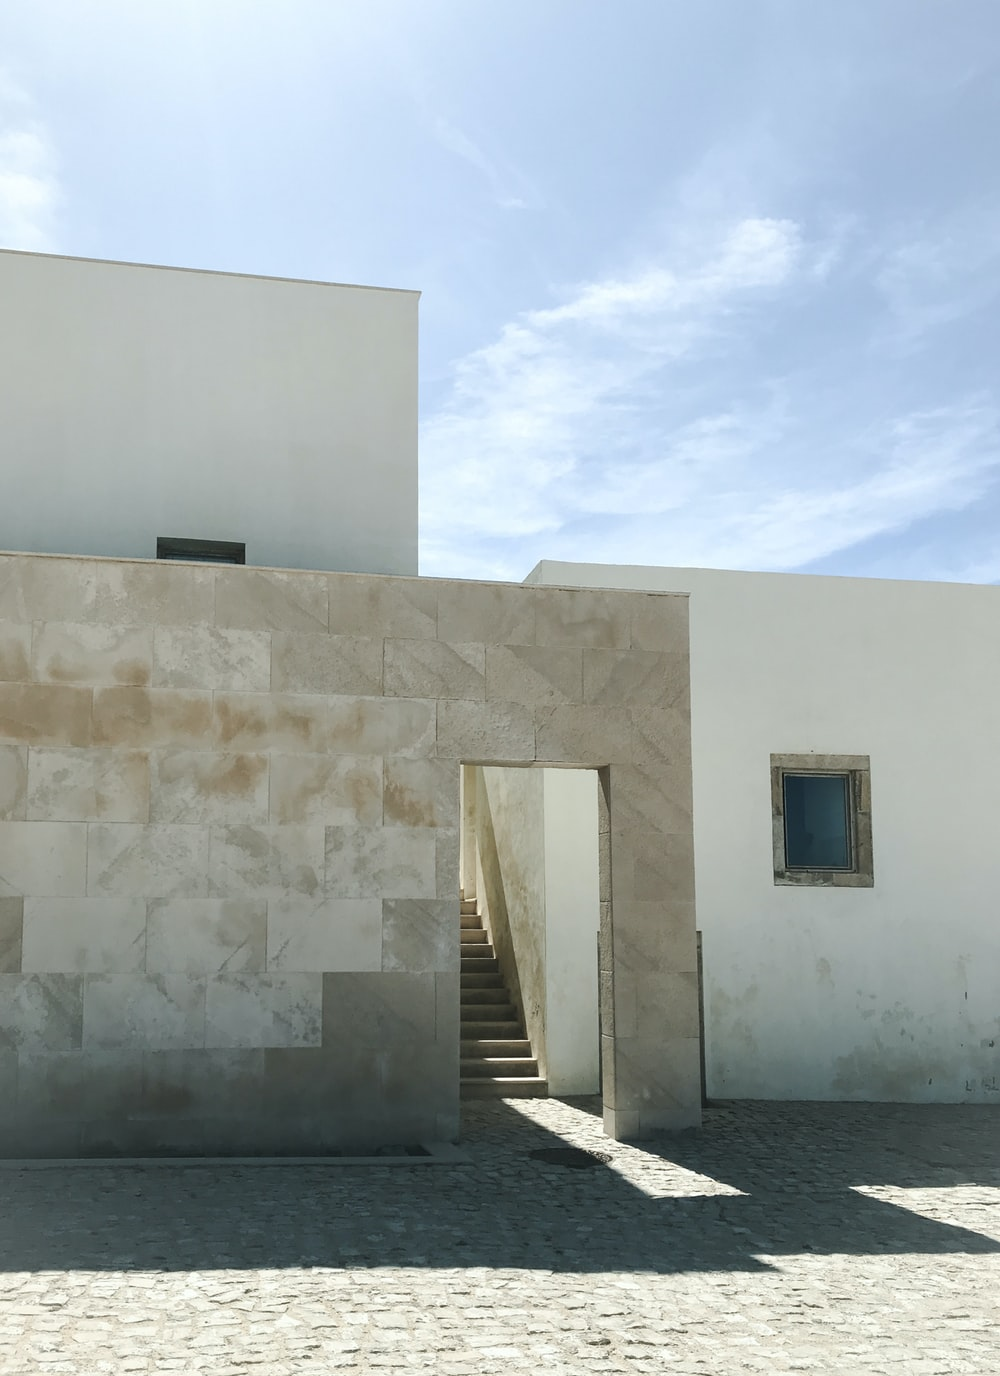 white concrete wall under blue sky during daytime